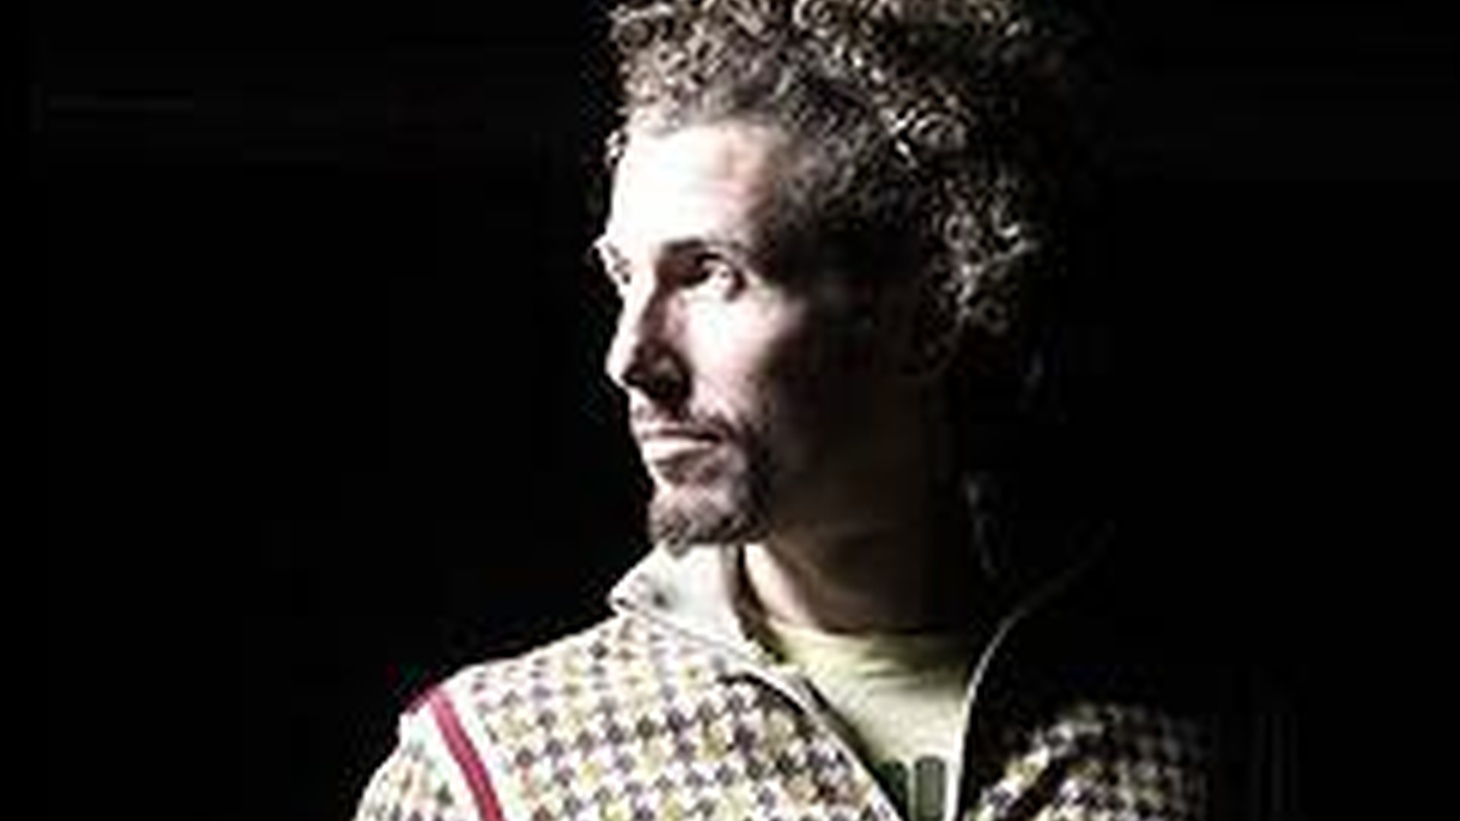 DJ, producer and founder of Ovum Records, Josh Wink returns to KCRW to join Raul Campos in the 11 o'clock hour for a guest DJ set.